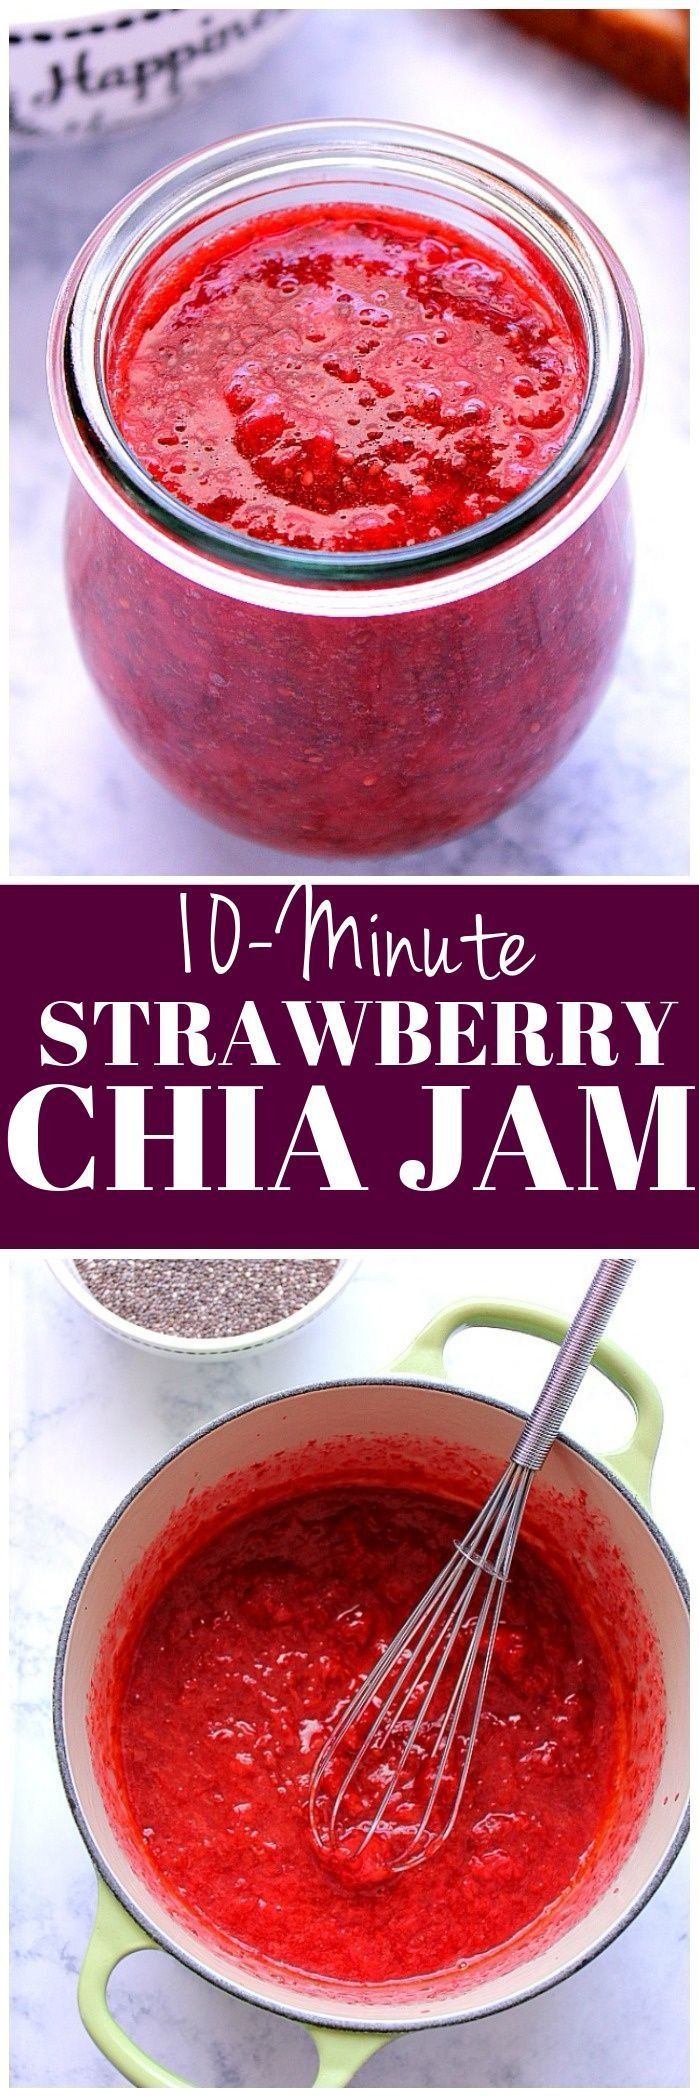 This sugar-free Strawberry Chia Jam Recipe takes only 10 minutes to make and can be made with any fruit you like! Perfect healthier jam with benefits of chia seeds.